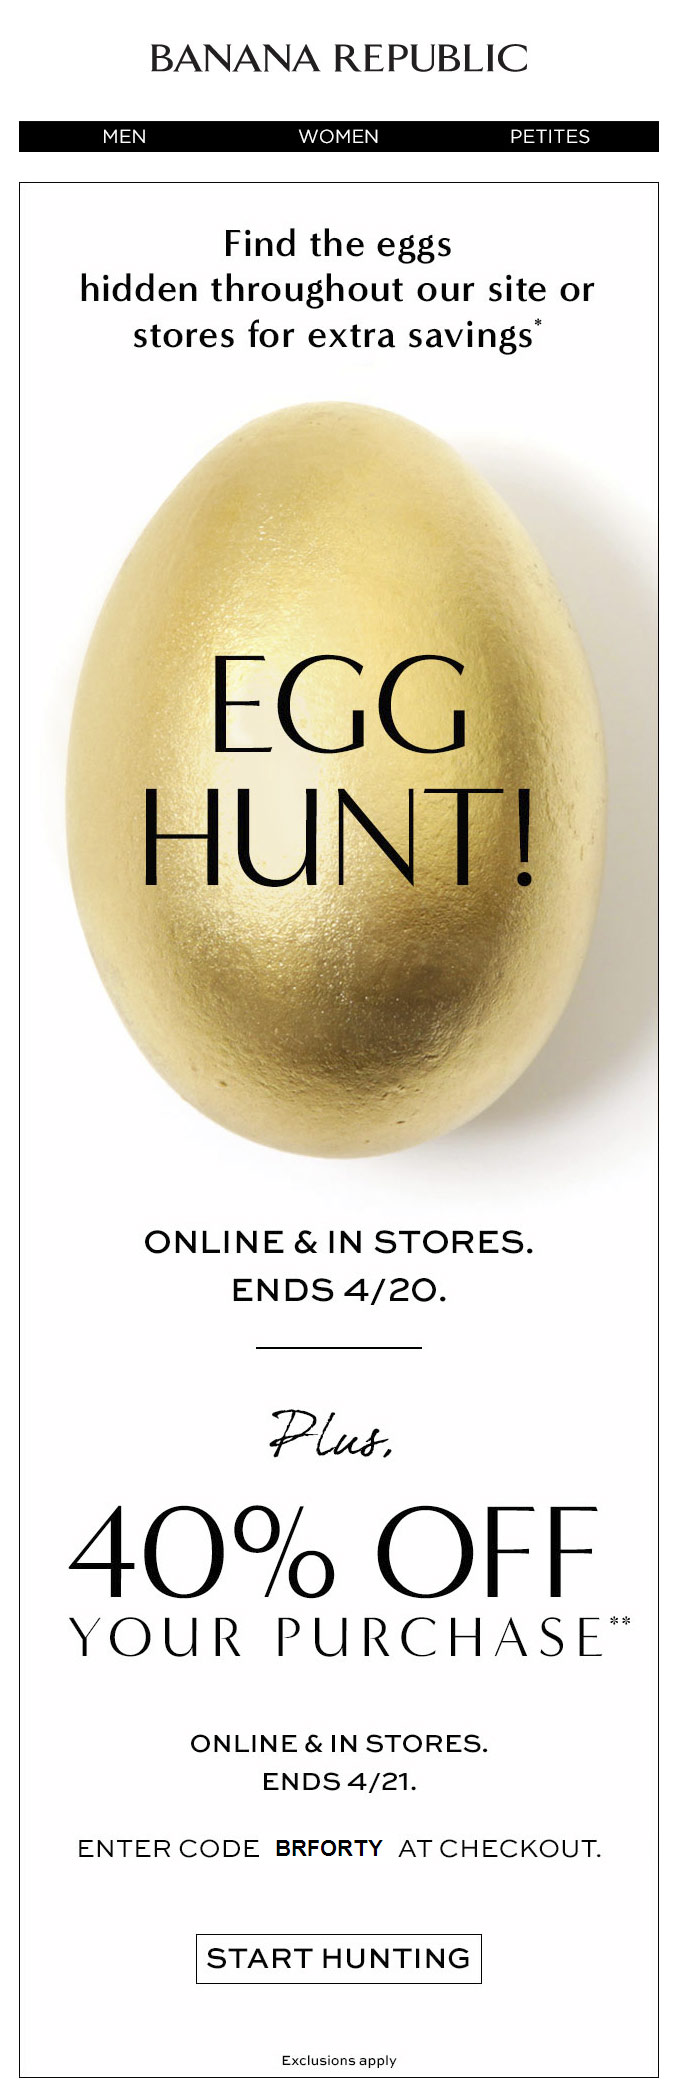 Banana Republic easter emails